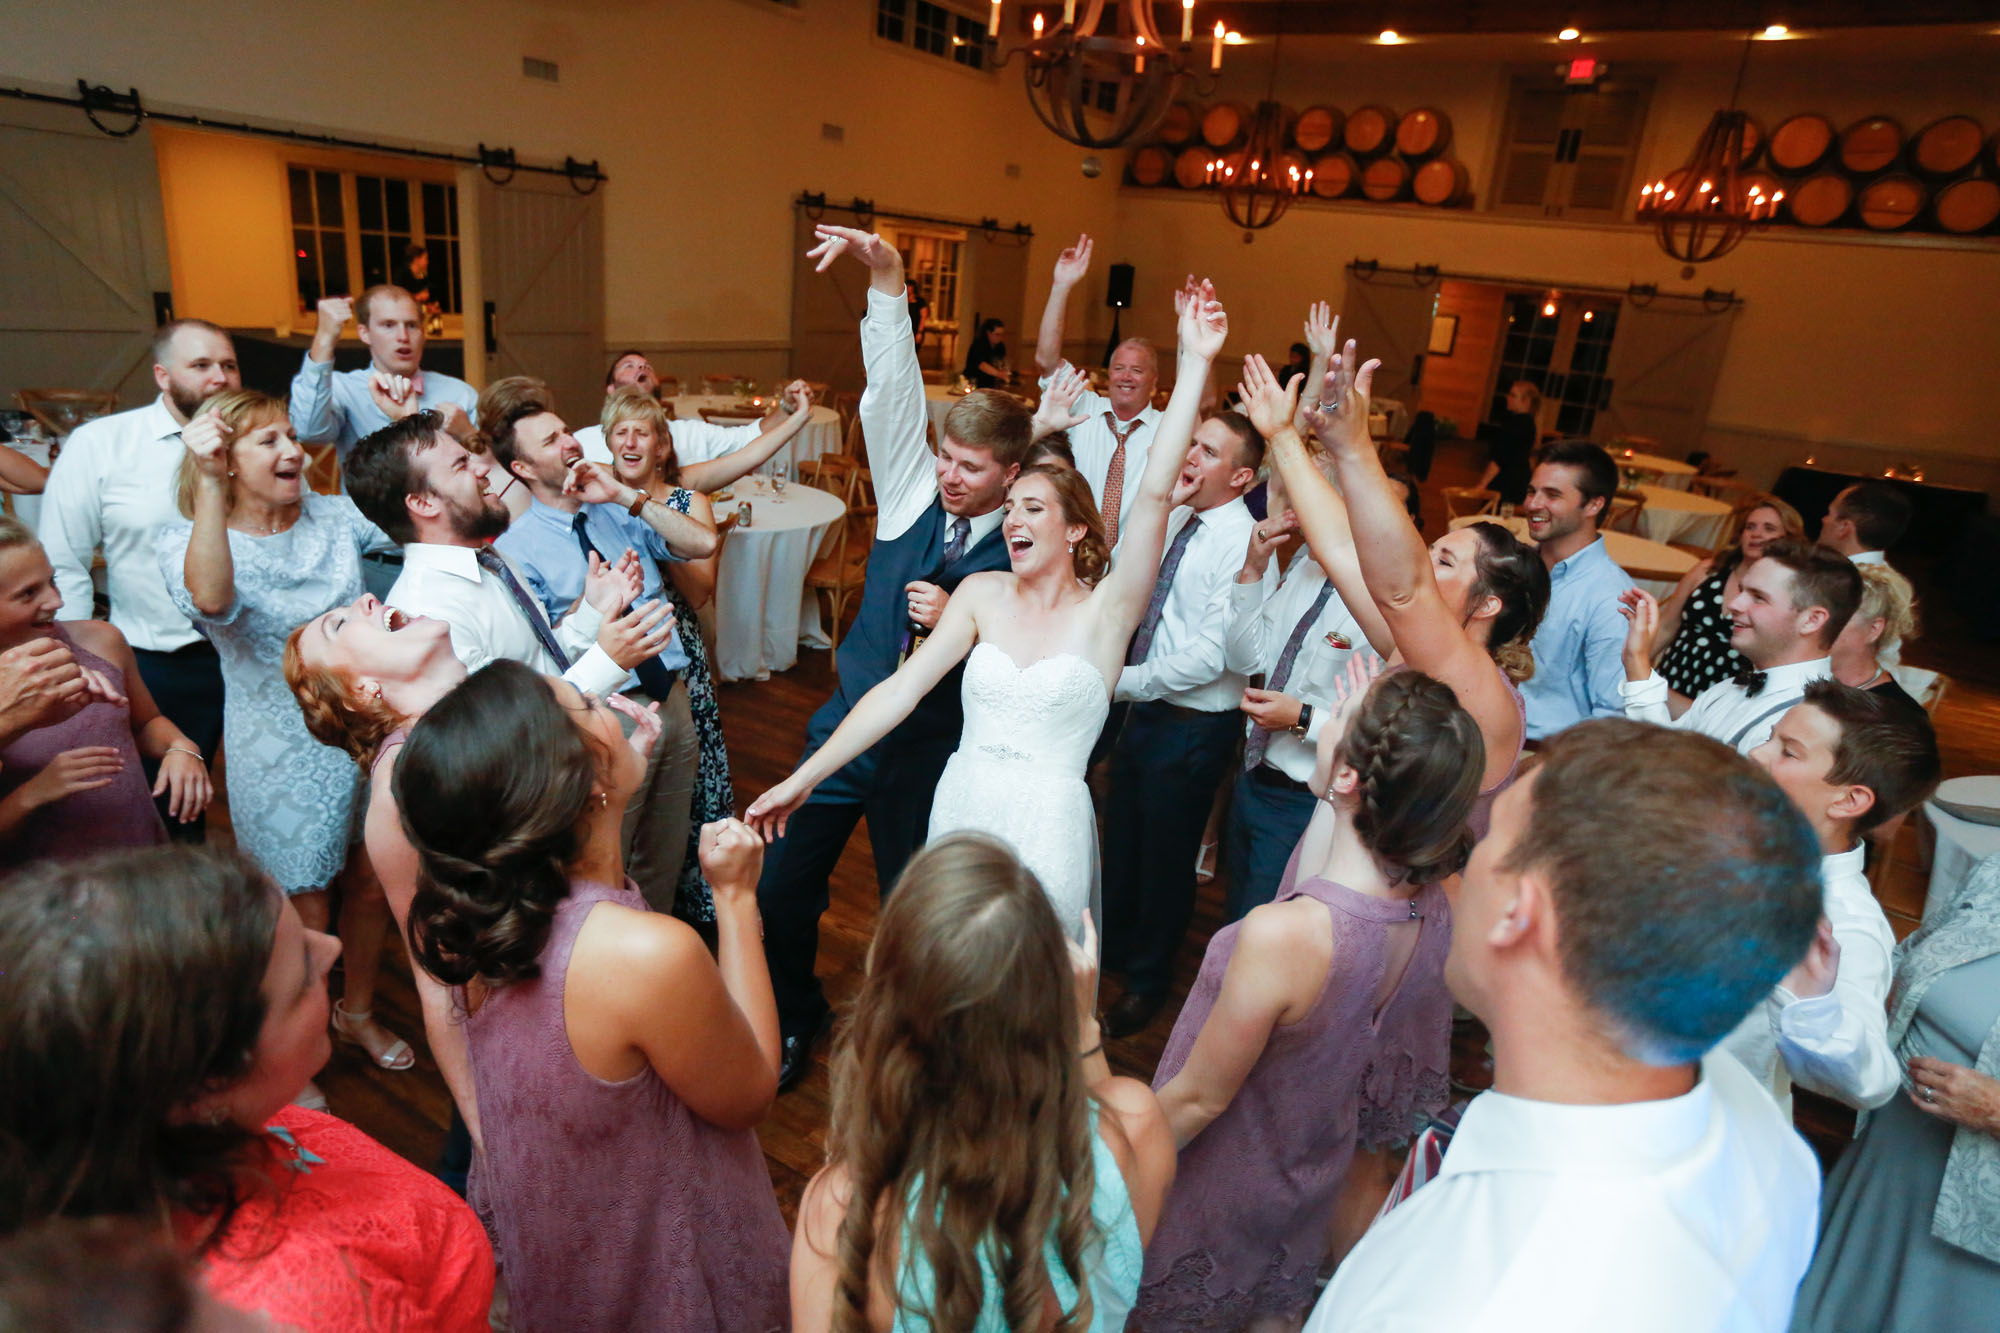 7/7/17  Crozet, VA - Cody and Mady's Wedding at King Family Vineyard.